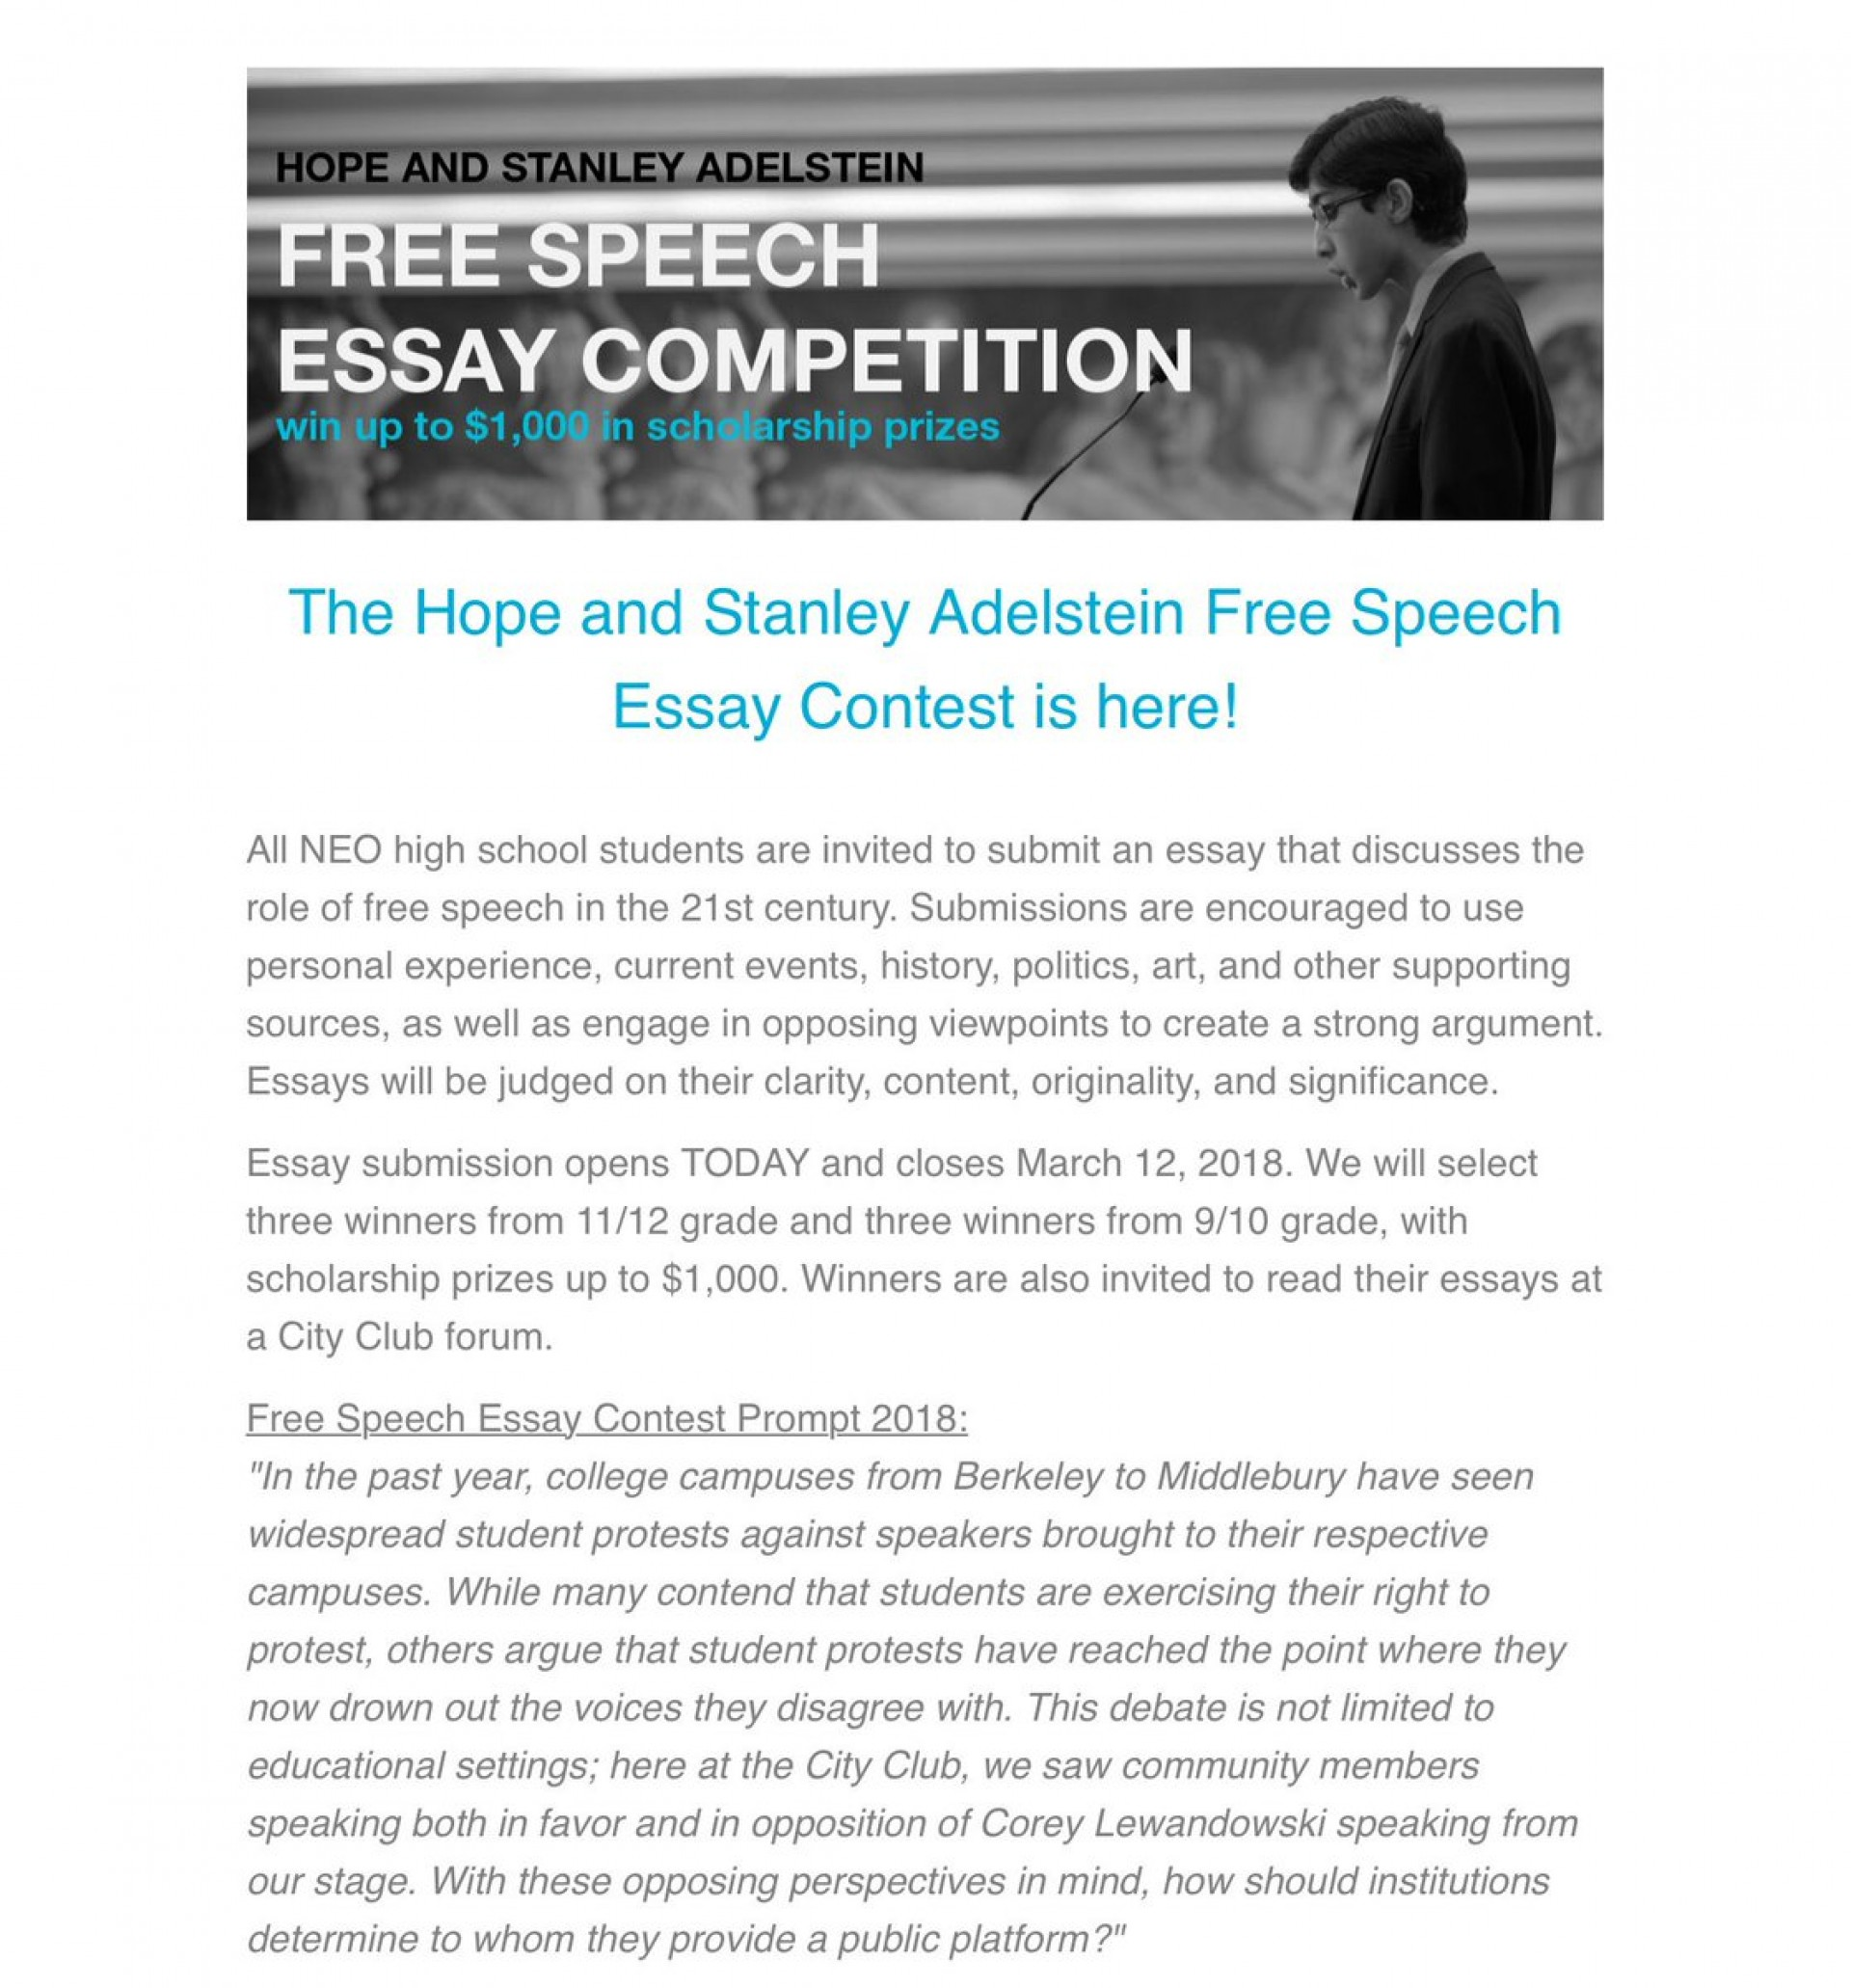 017 Dvmvx0ax0aaes7v Essay Example Scholarship Astounding Contest Contests For High School Students 2019 Middle 1920